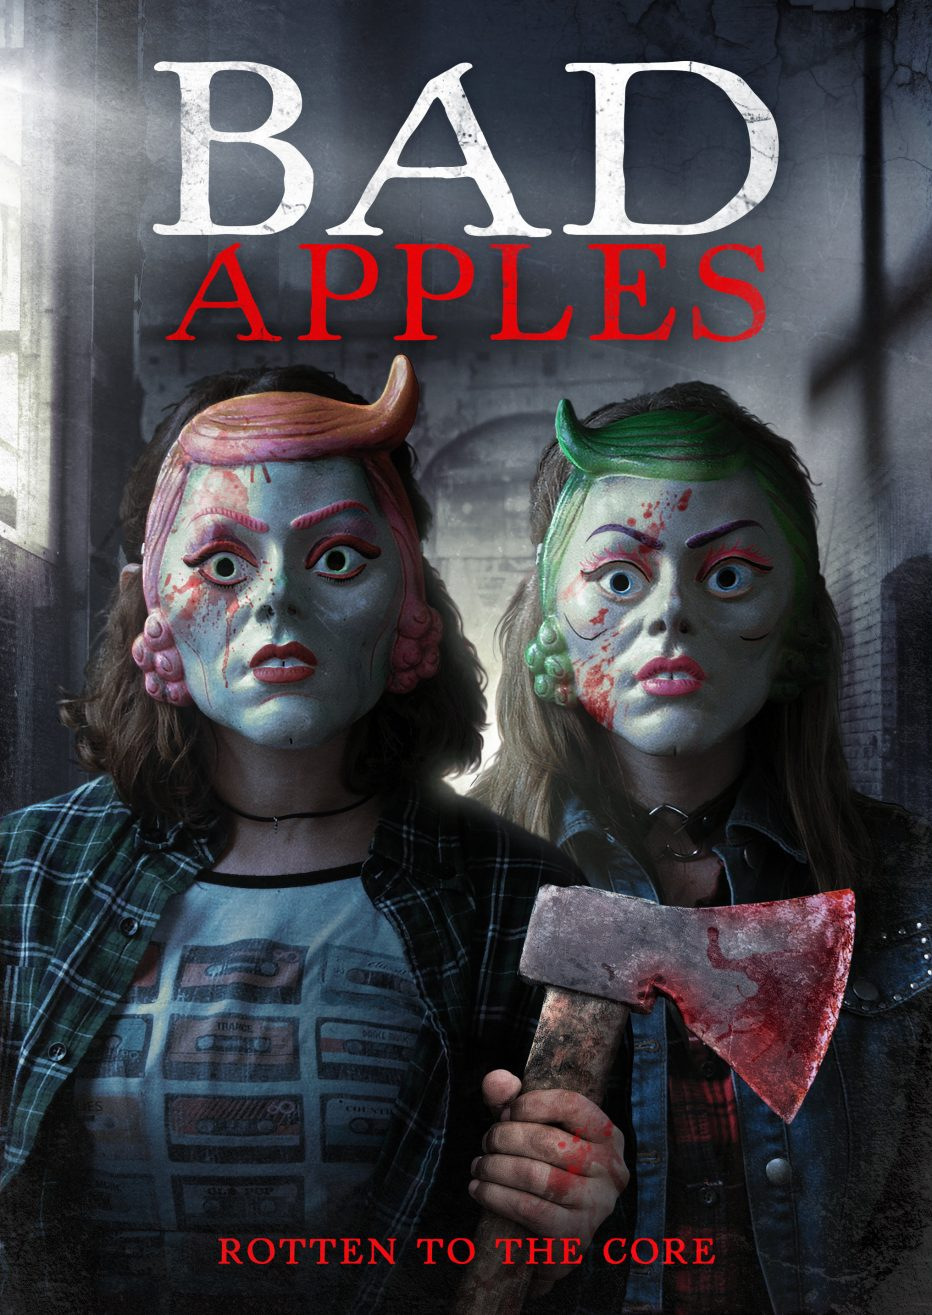 BAD APPLES – New Trailer and Poster for frightening February release!